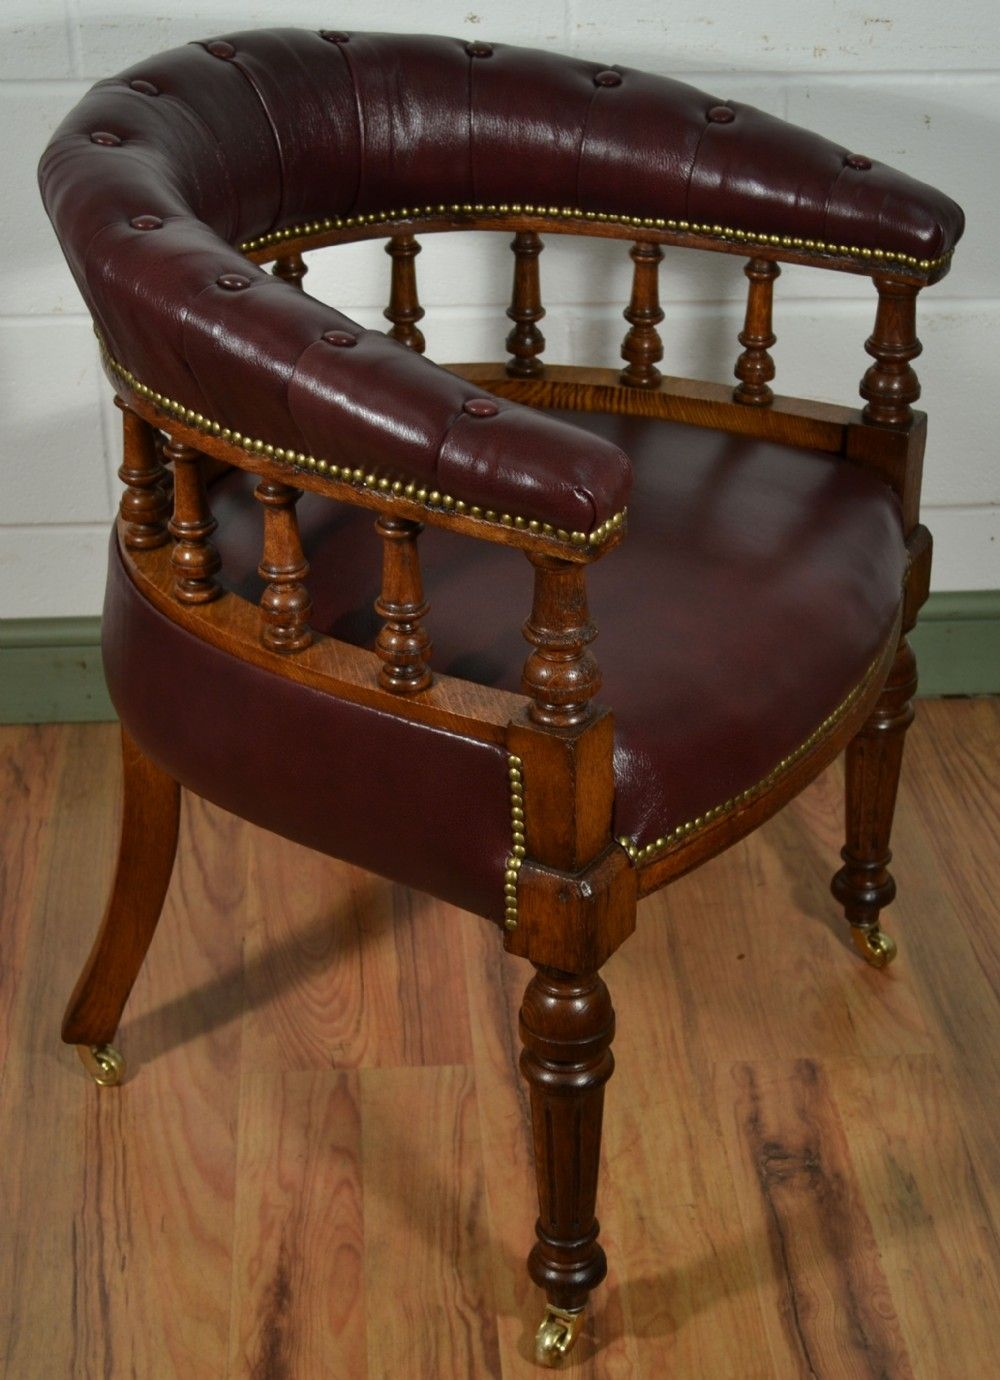 Captains Chair Restoration Hardware Aviator Used For Sale Nothing More Special Than Seafaring Style